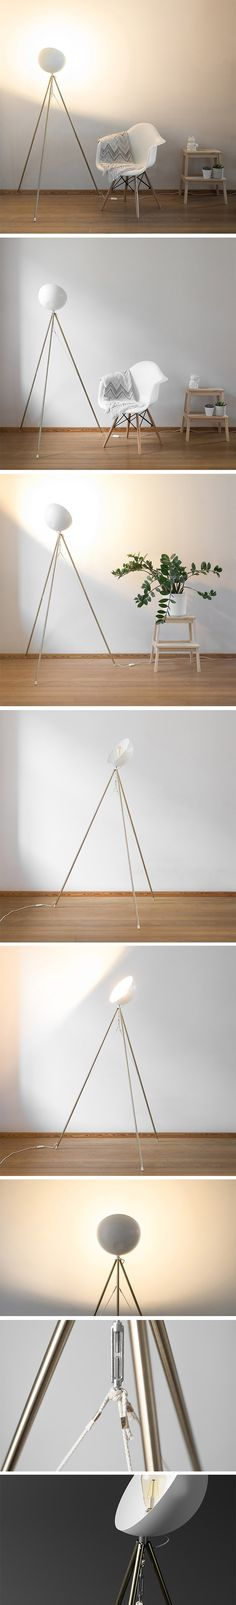 According to designer Mindaugas Petrikas, the lamp shade opening should always be pointed at a wall so that, like the flower, it looks to the bright spot, always facing the light! With its spindly legs and light color scheme, it's eye-catching without being visually cluttering. Its legs are connected by three ropes. This creates tension in only one axis, allowing the legs to move sideways with ease, but preventing them from moving back and forth.